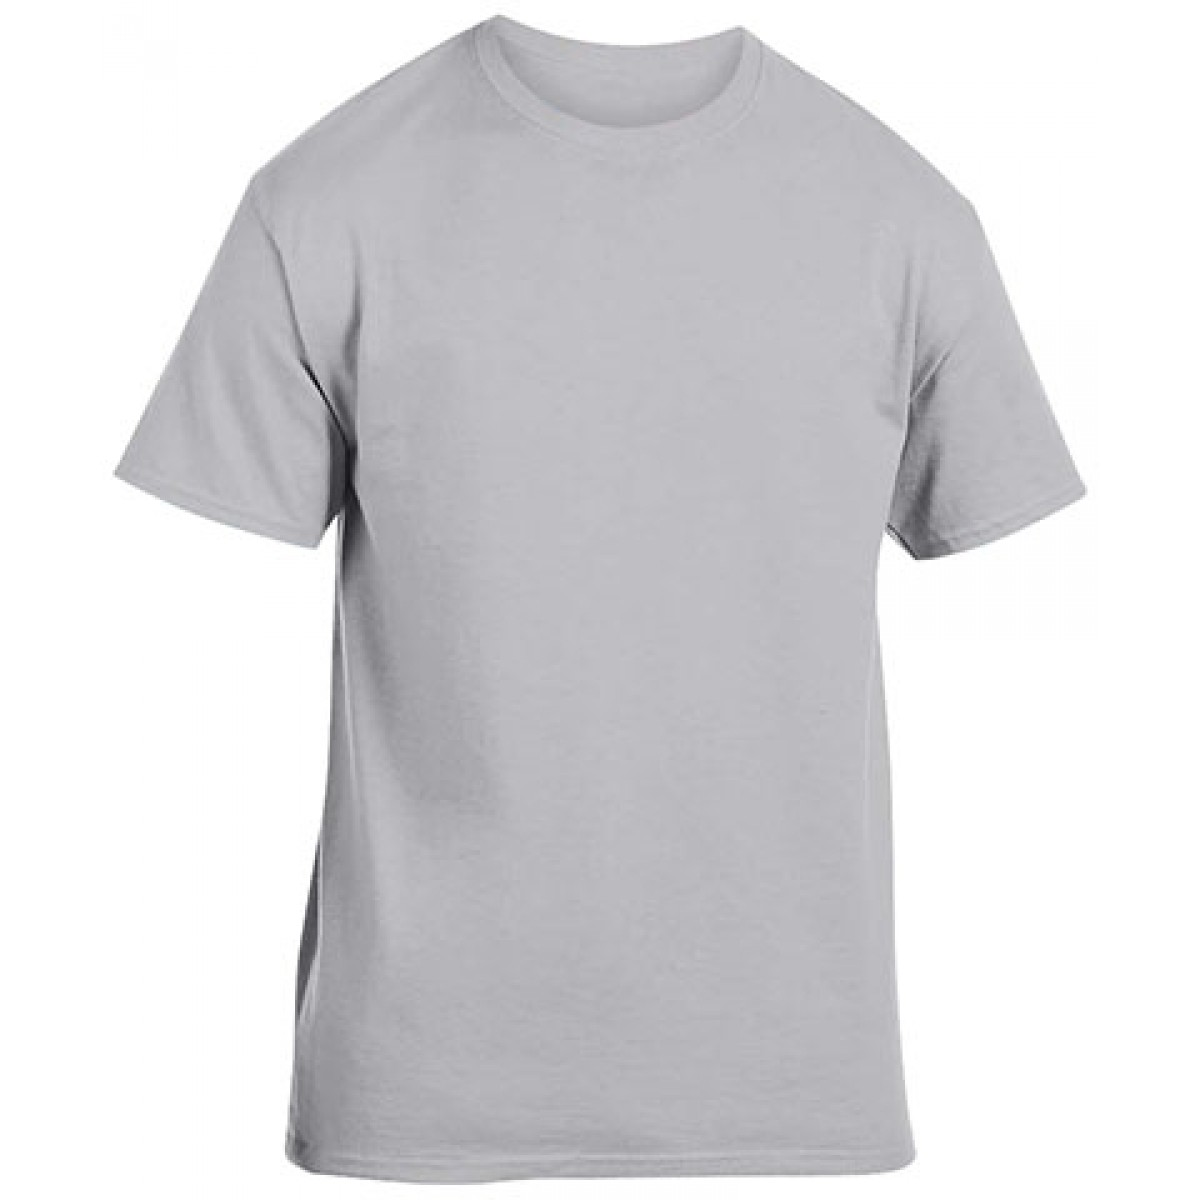 Cotton Short Sleeve T-Shirt-Gray-YS